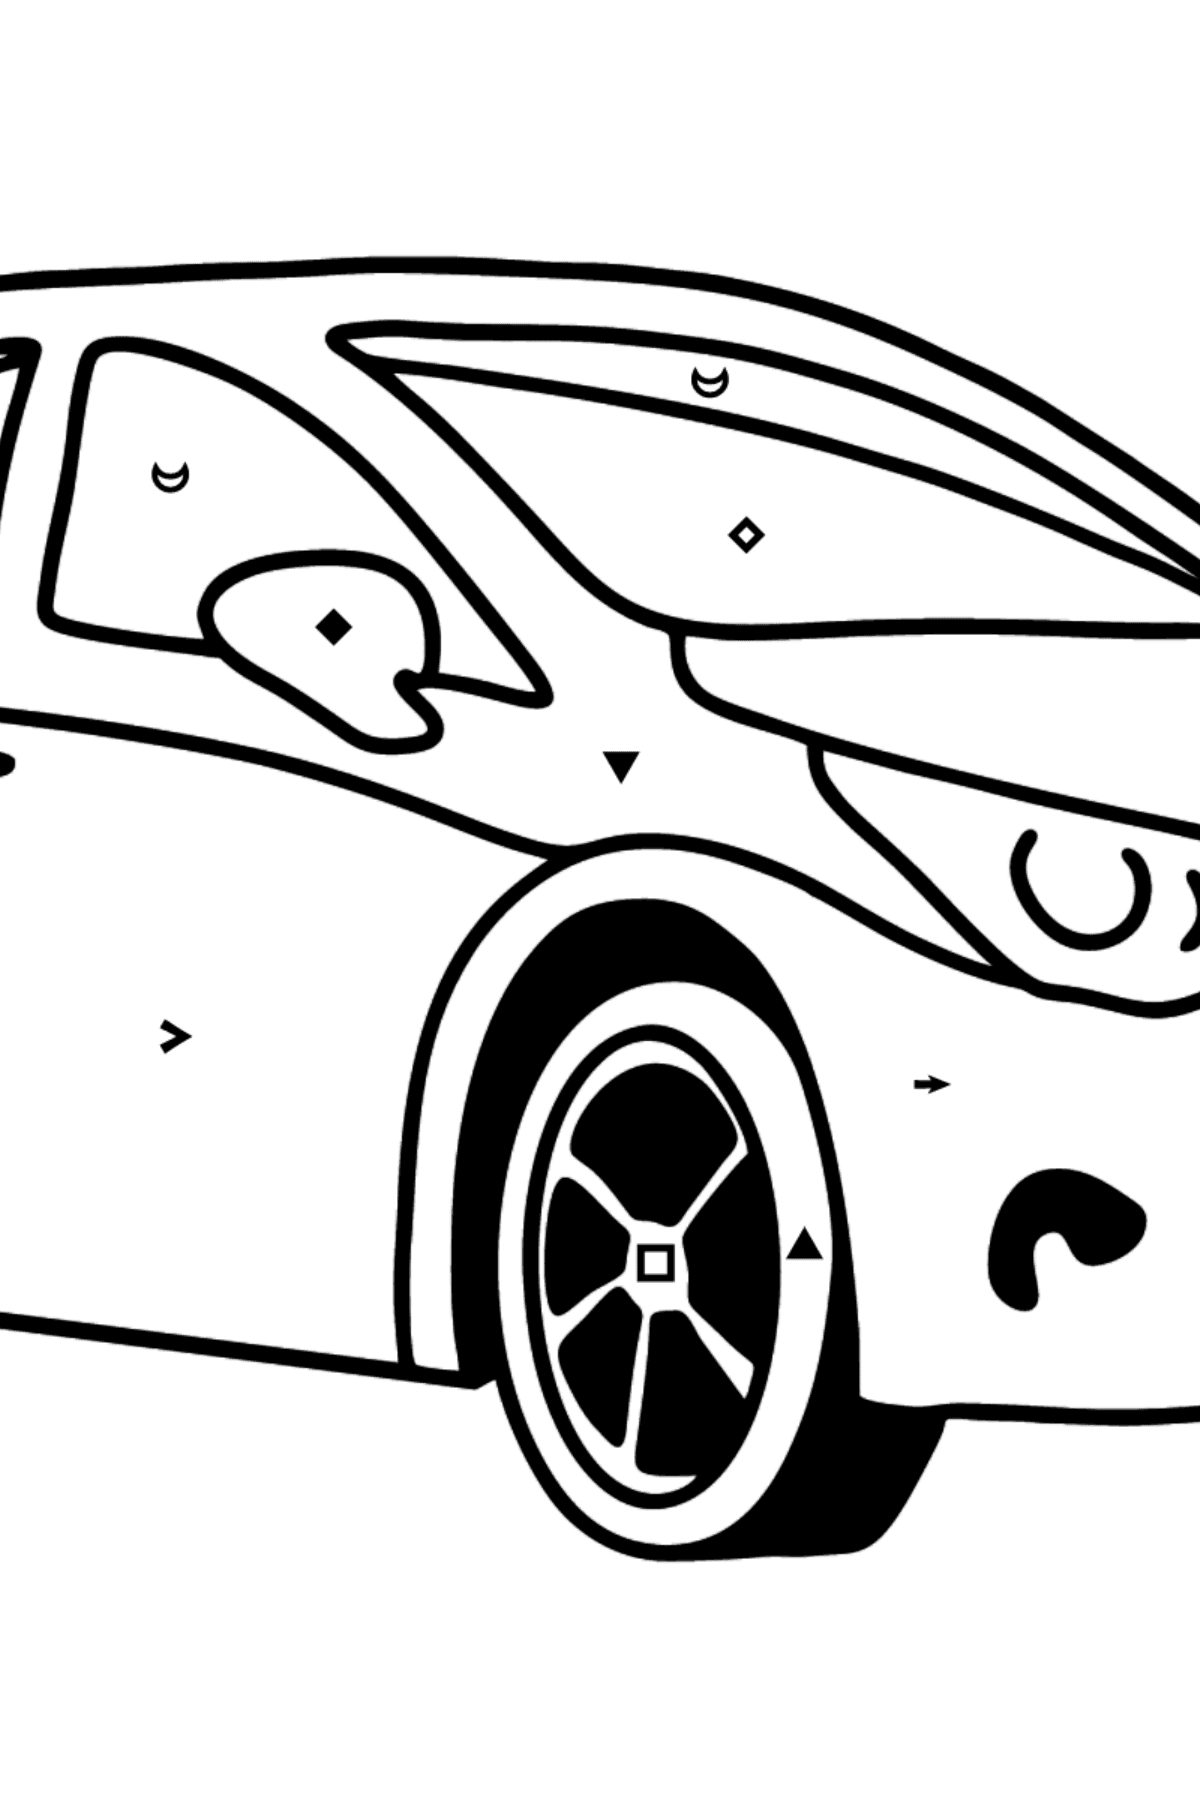 Toyota Avensis Car coloring page - Coloring by Symbols for Kids